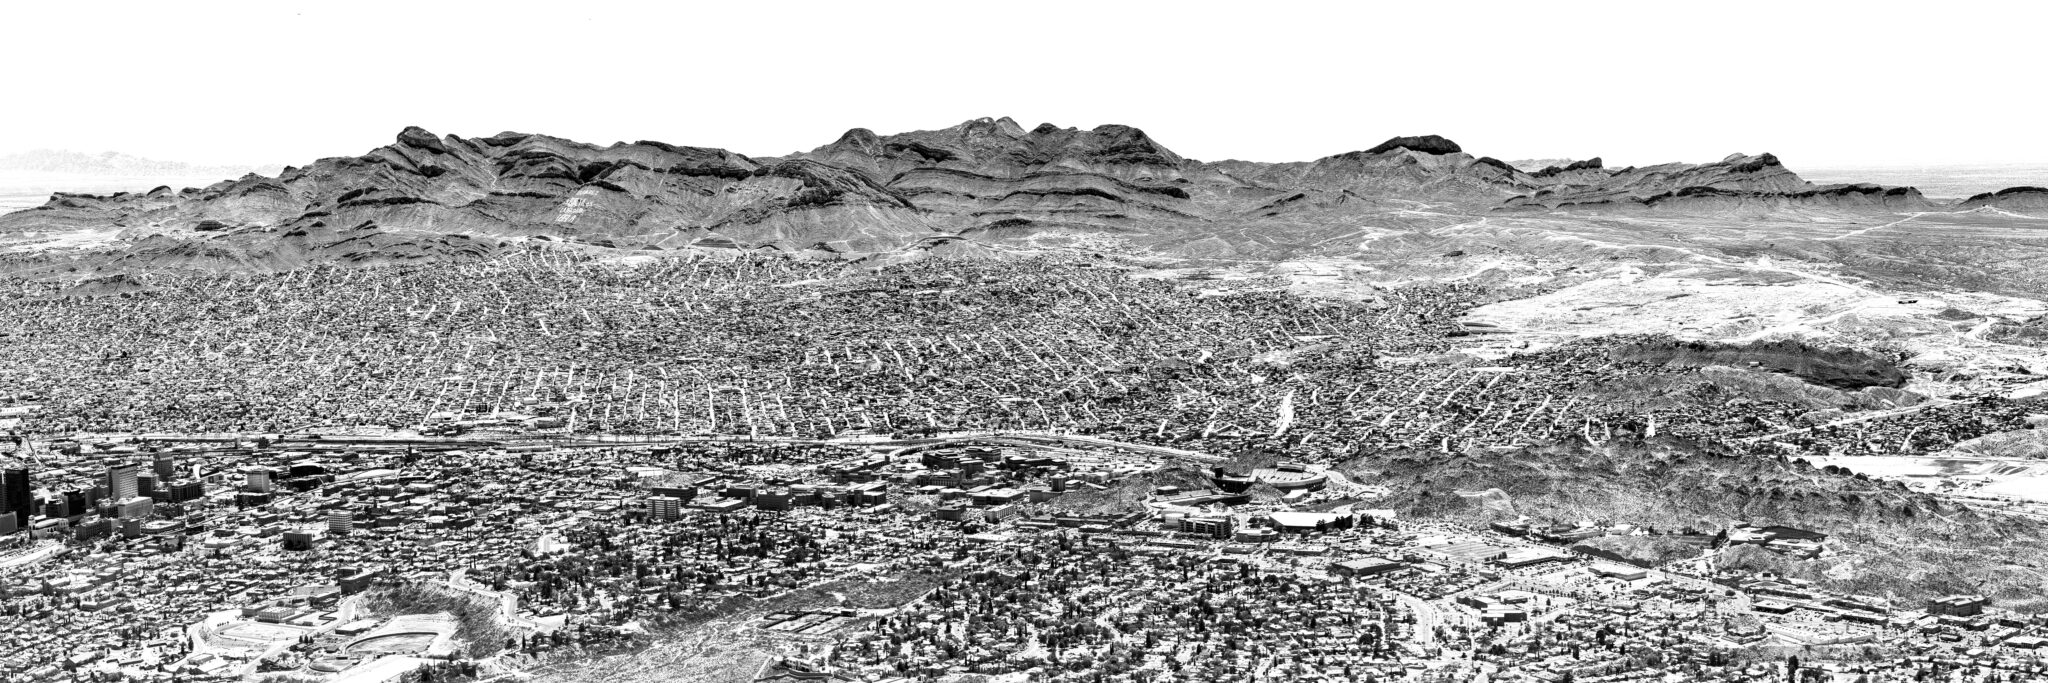 Black and white landscape photograph of the Franklin Mountains in El Paso, Texas. The mountains surround the city and can be seen for miles and miles.